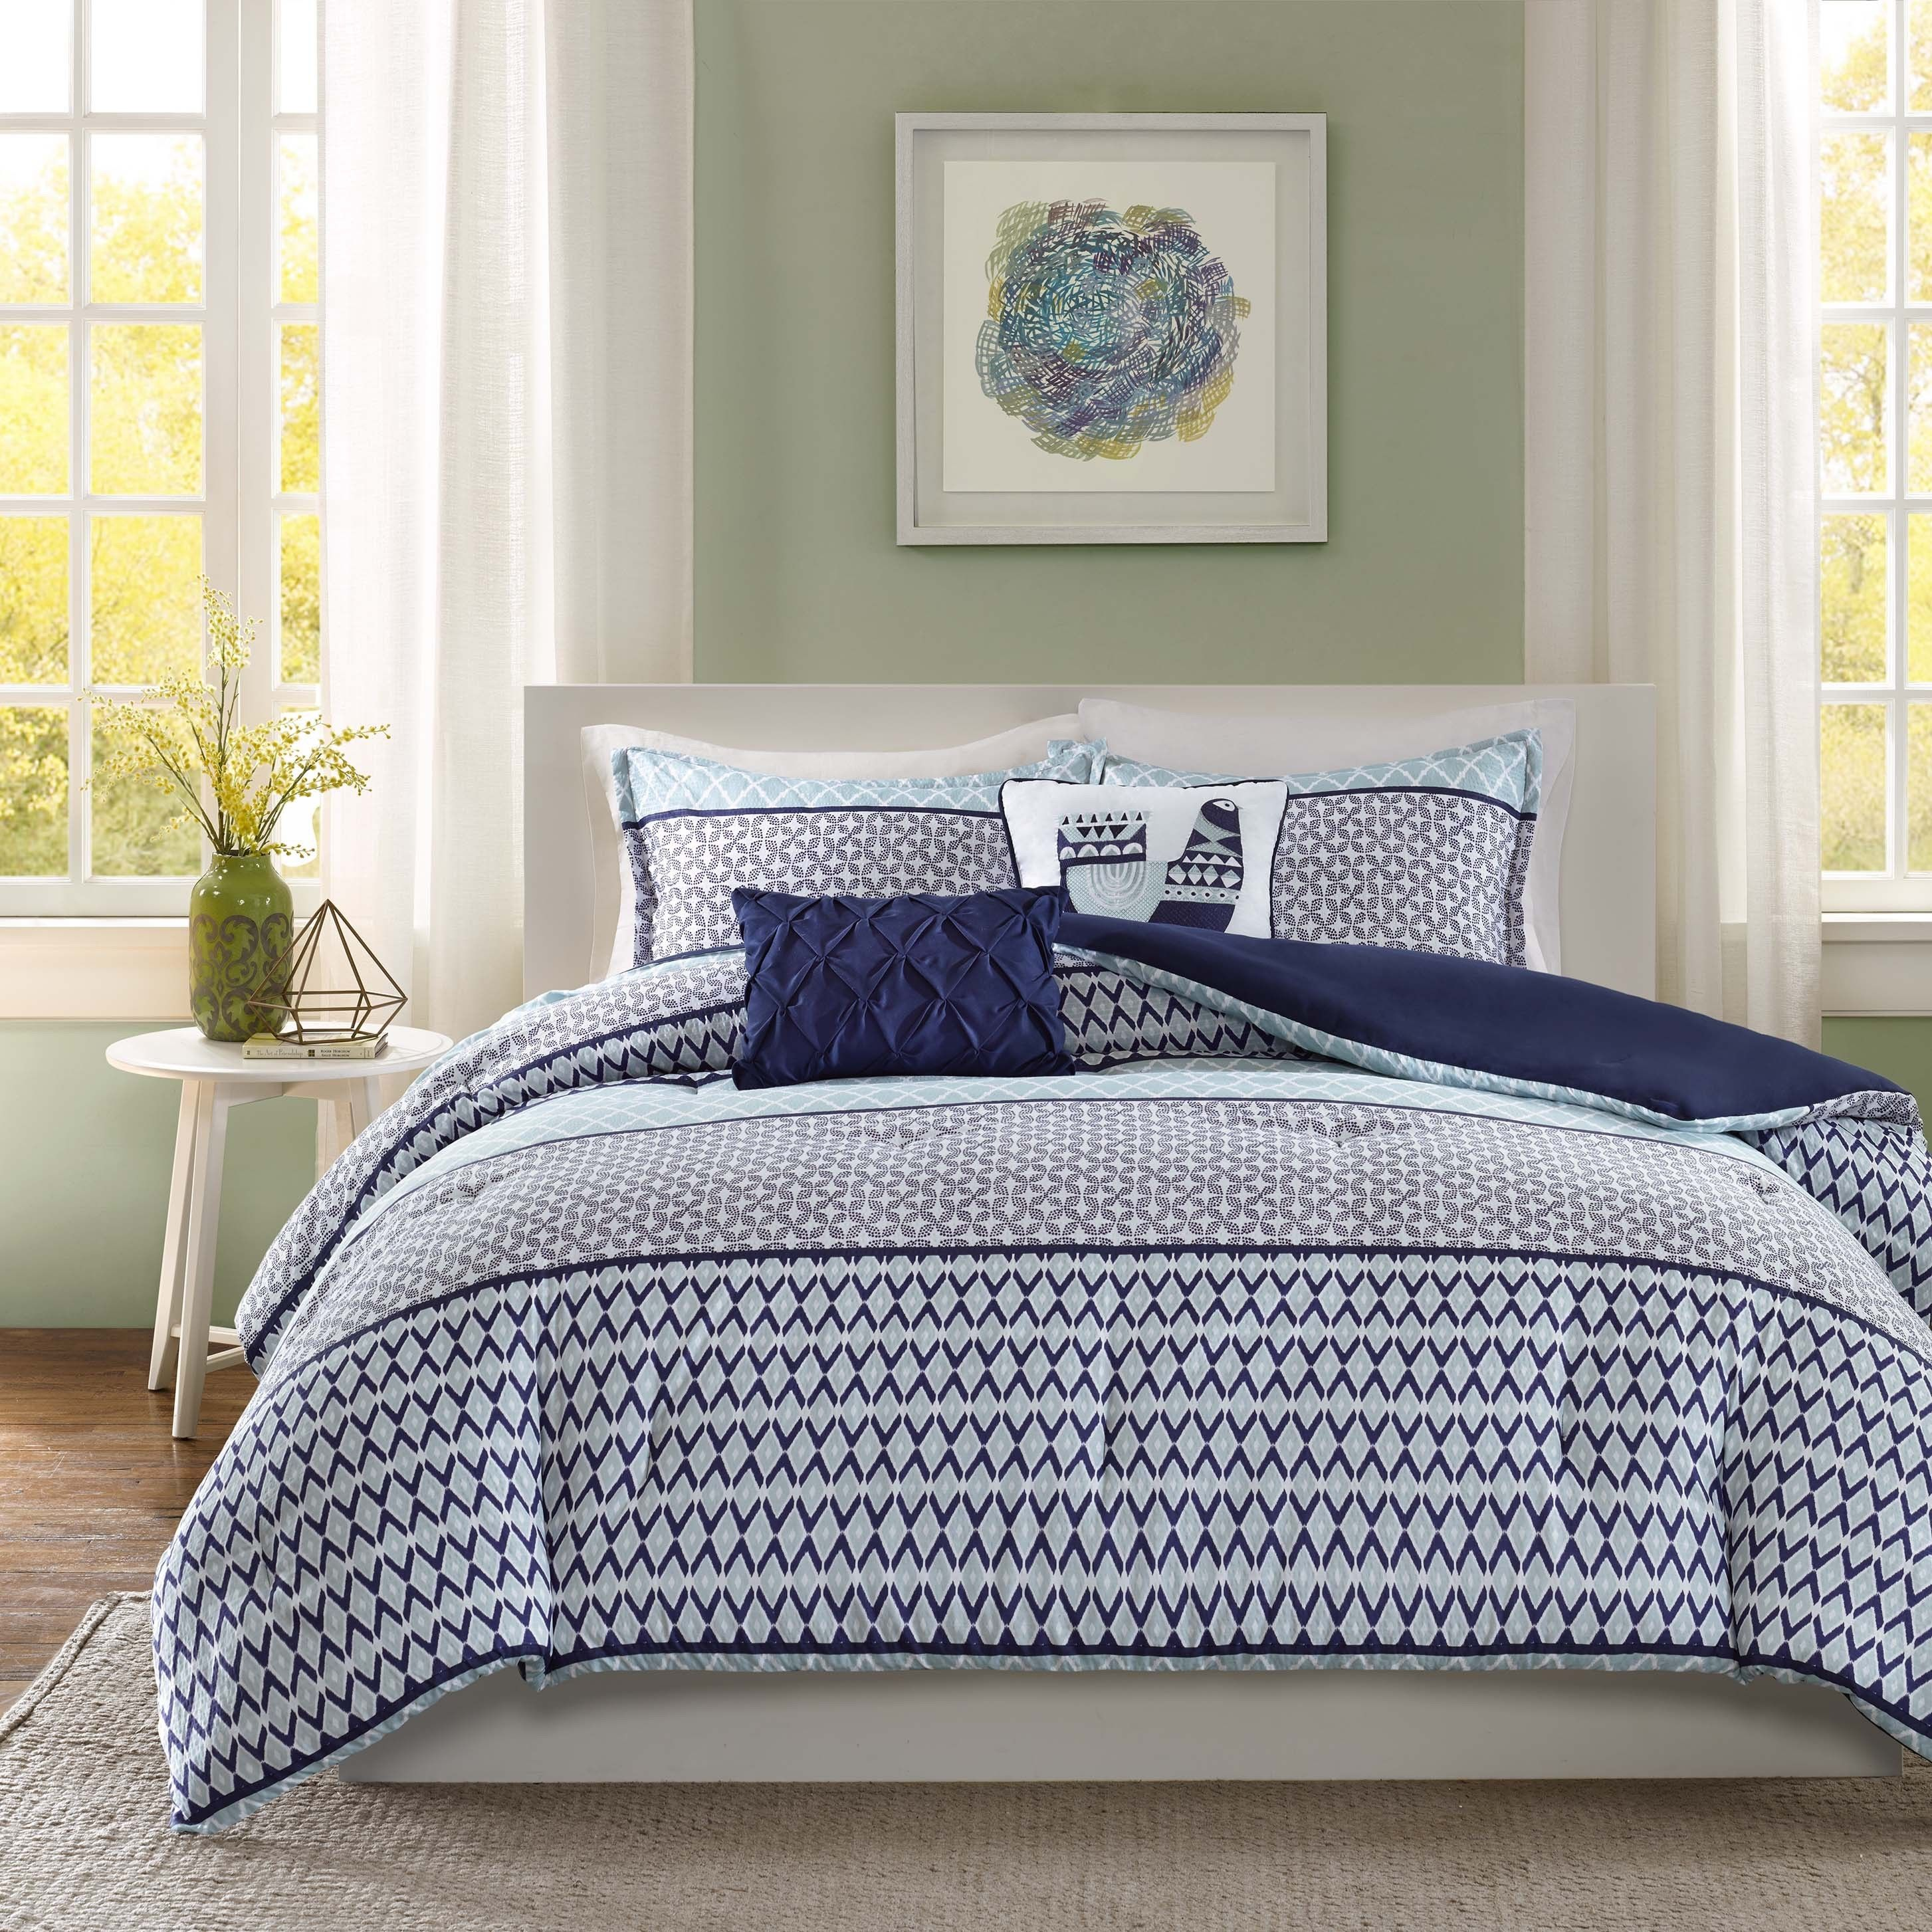 com of blue cfdcu set king silver comforter rosemonde piece concept bed full overstock size beds navy exceptional images cheapsilver bedding conceptets kingize